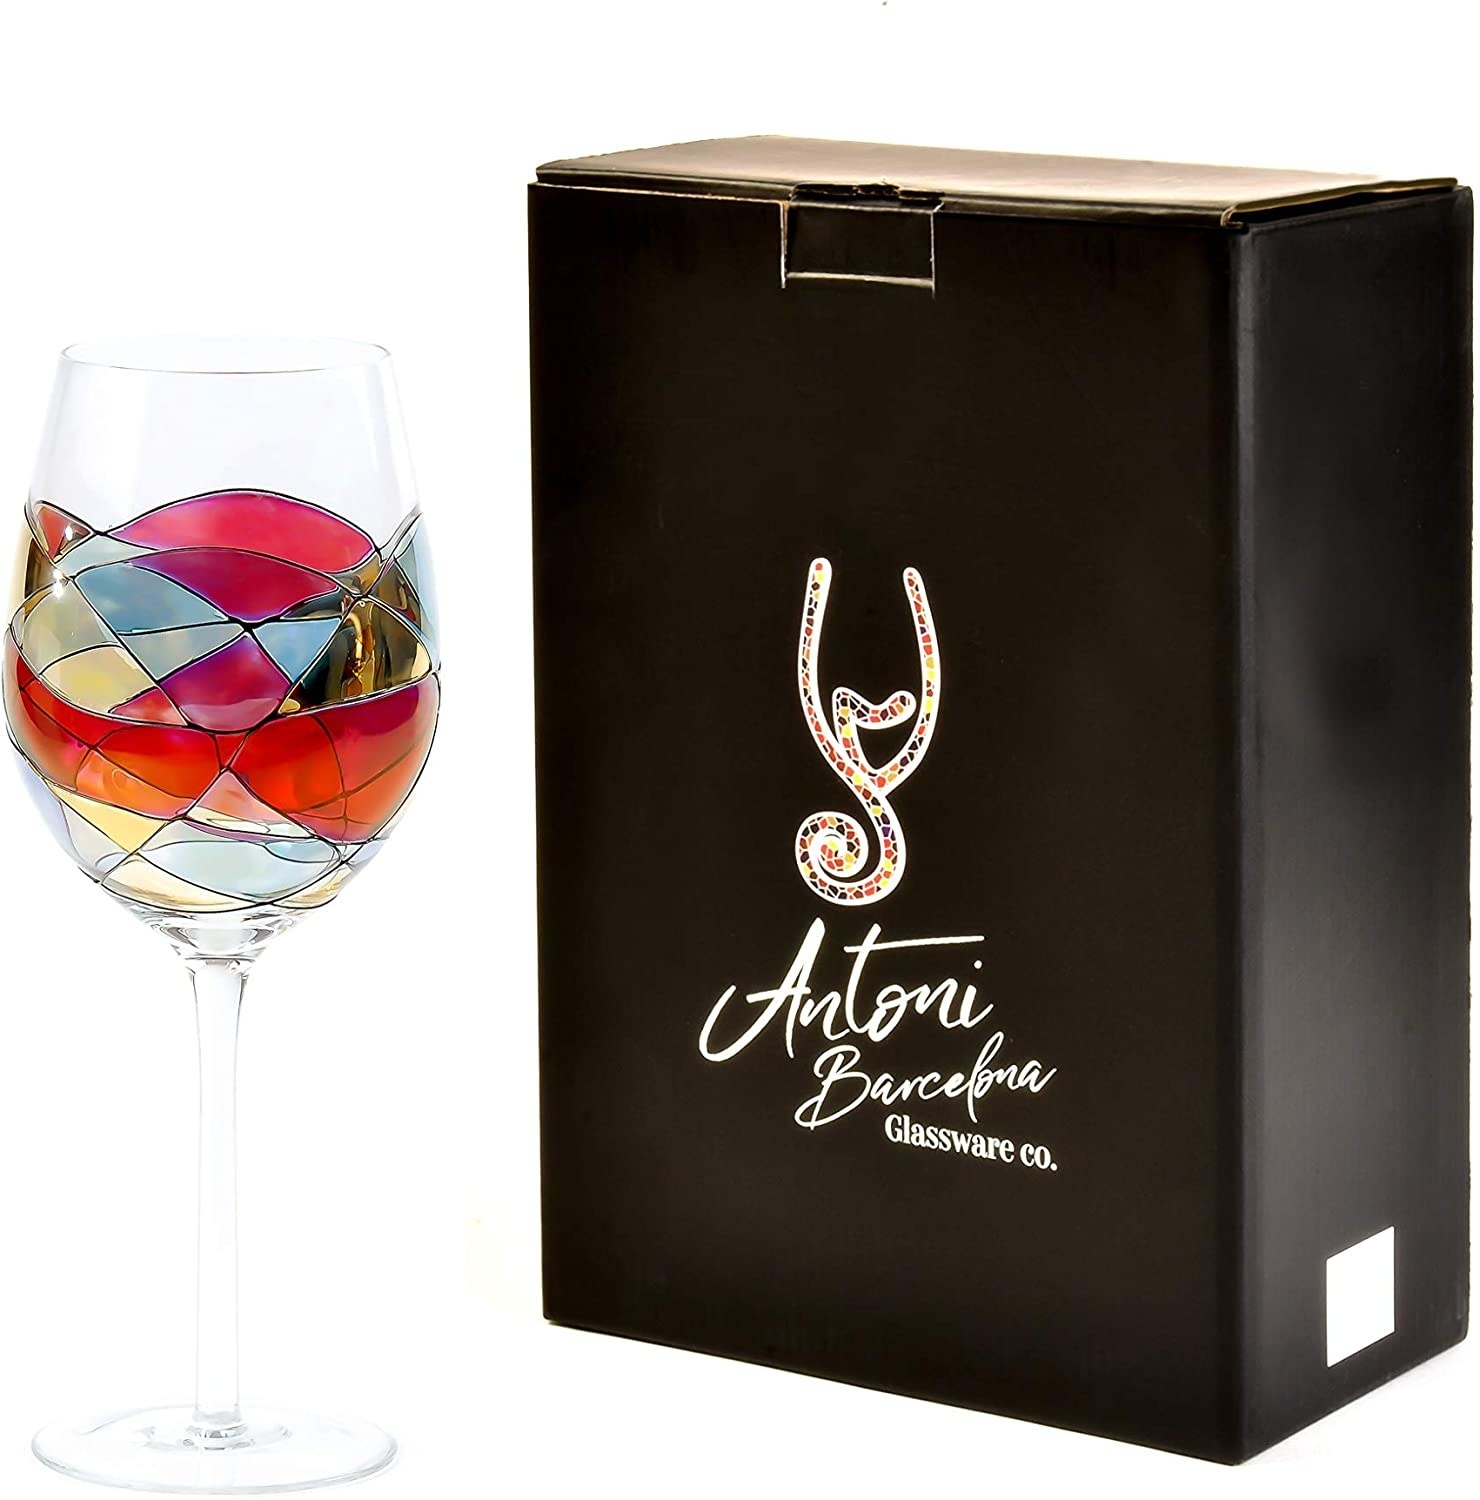 one antoni barcelona painted wine glass next to its box packaging